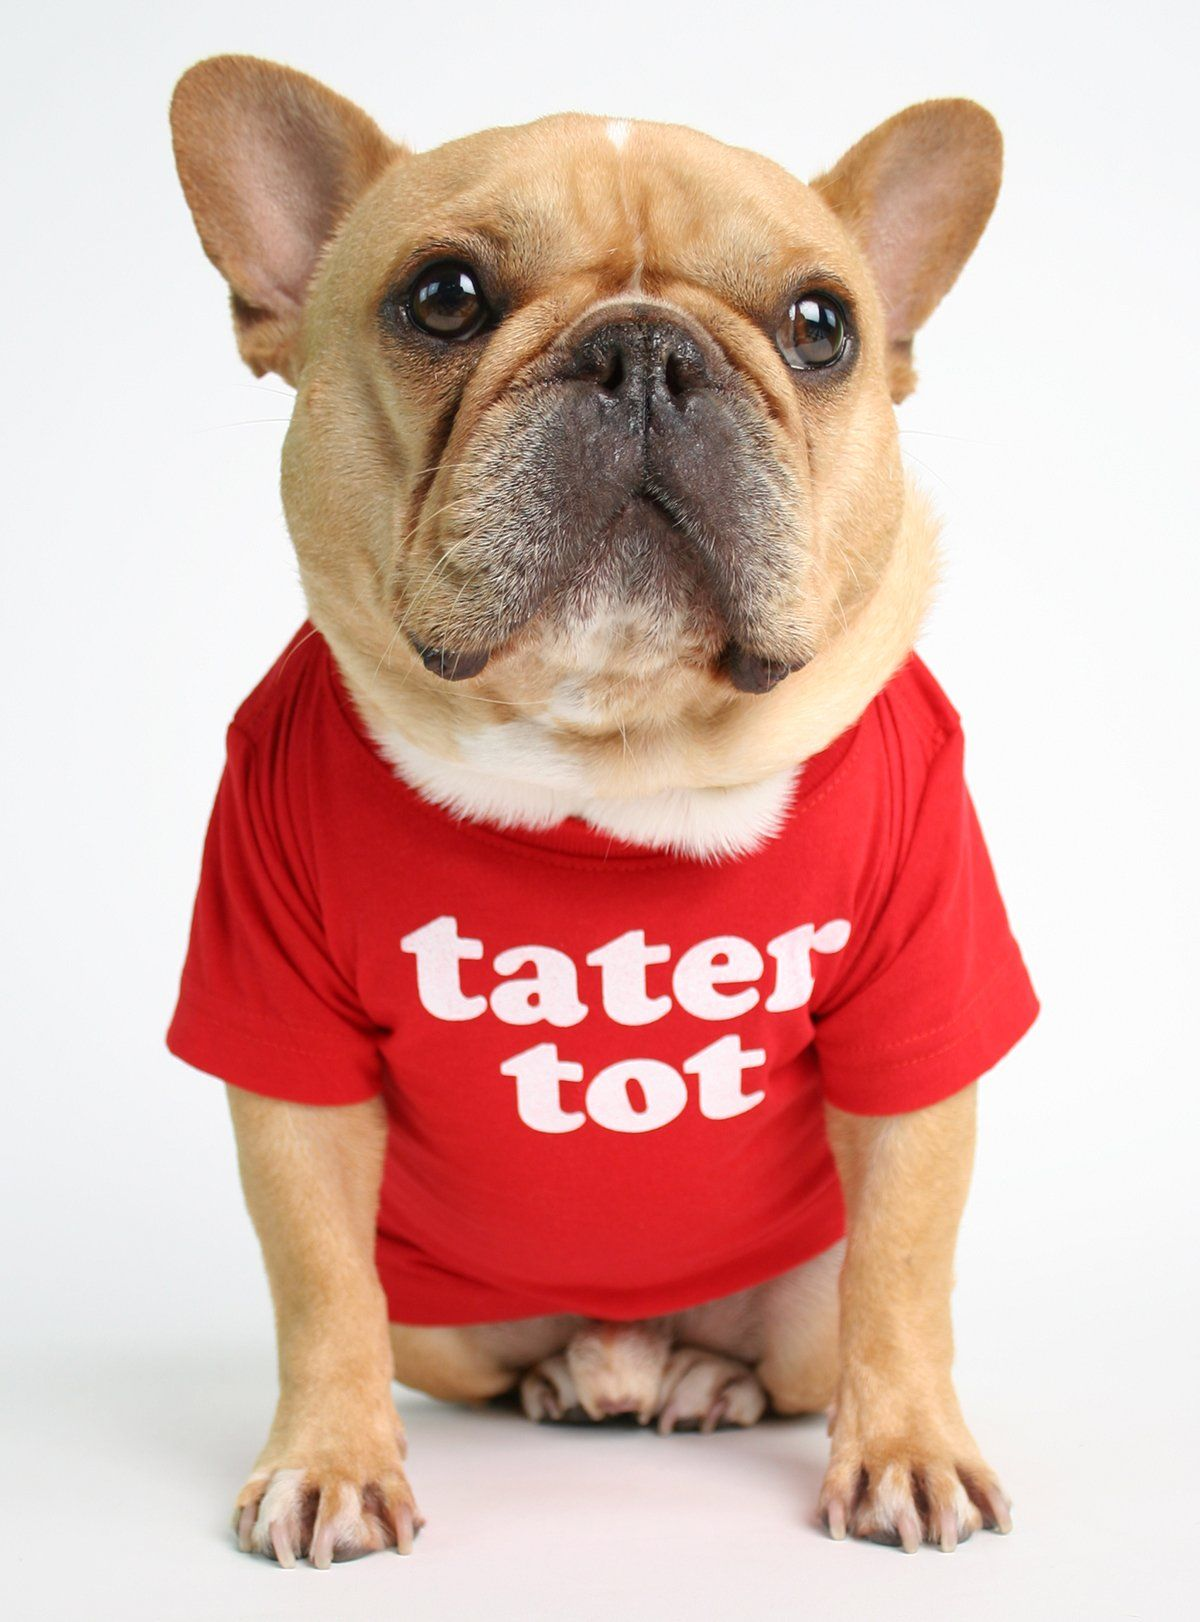 Tater Tot Dog Tee Dog Shirt French Bulldog Puppies Dogs